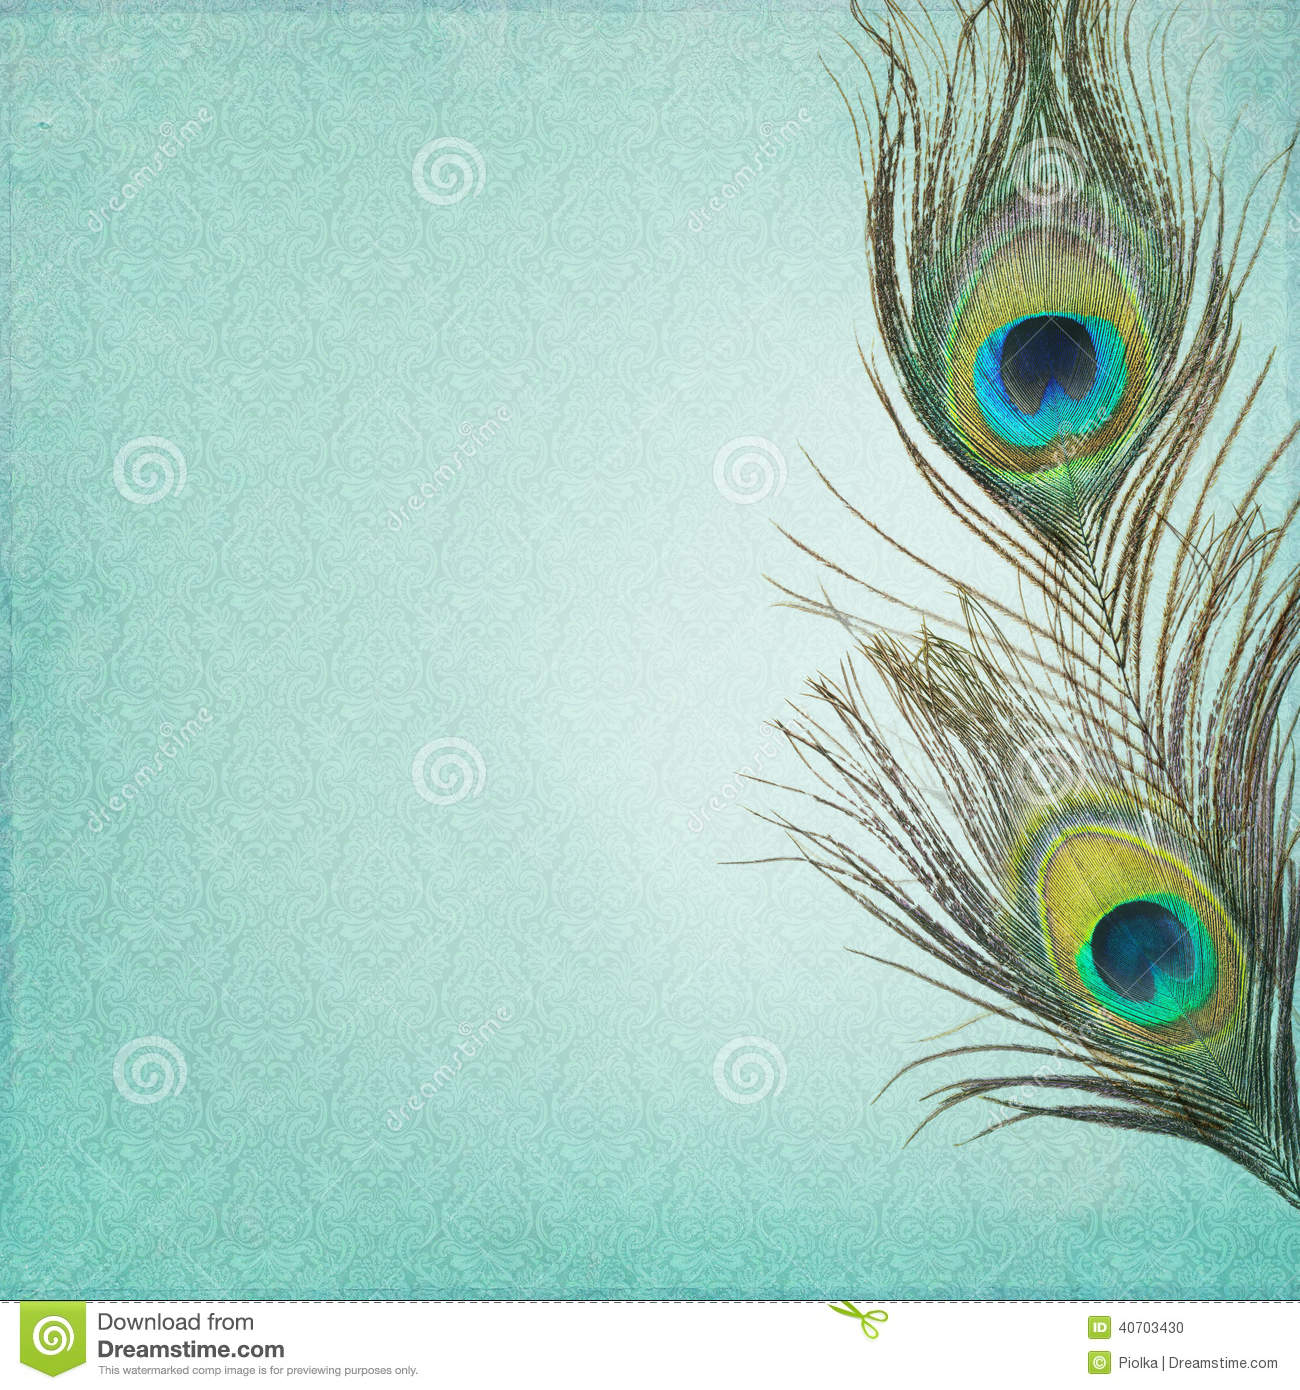 Hd Diwali Wallpapers Free Vintage Background With Peacock Feathers Stock Photo